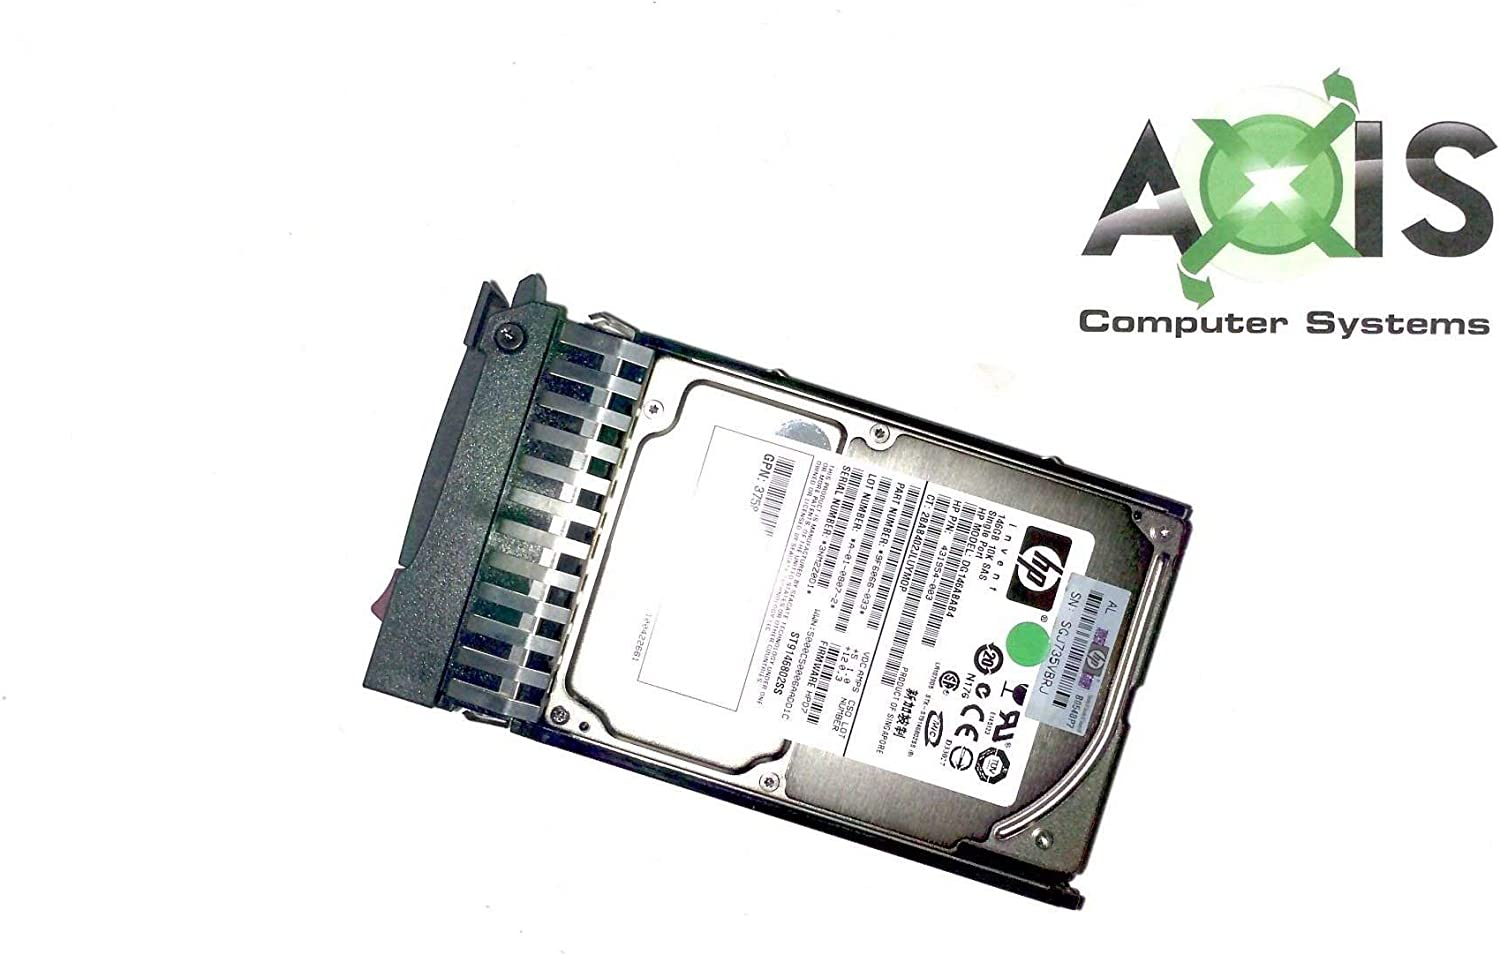 HP/Compaq DG146ABAB4 146GB 10000 RPM 2.5 Inch Serial Attached SCSI SFF Hot-Swap Hard Drive with Tray. (Renewed)